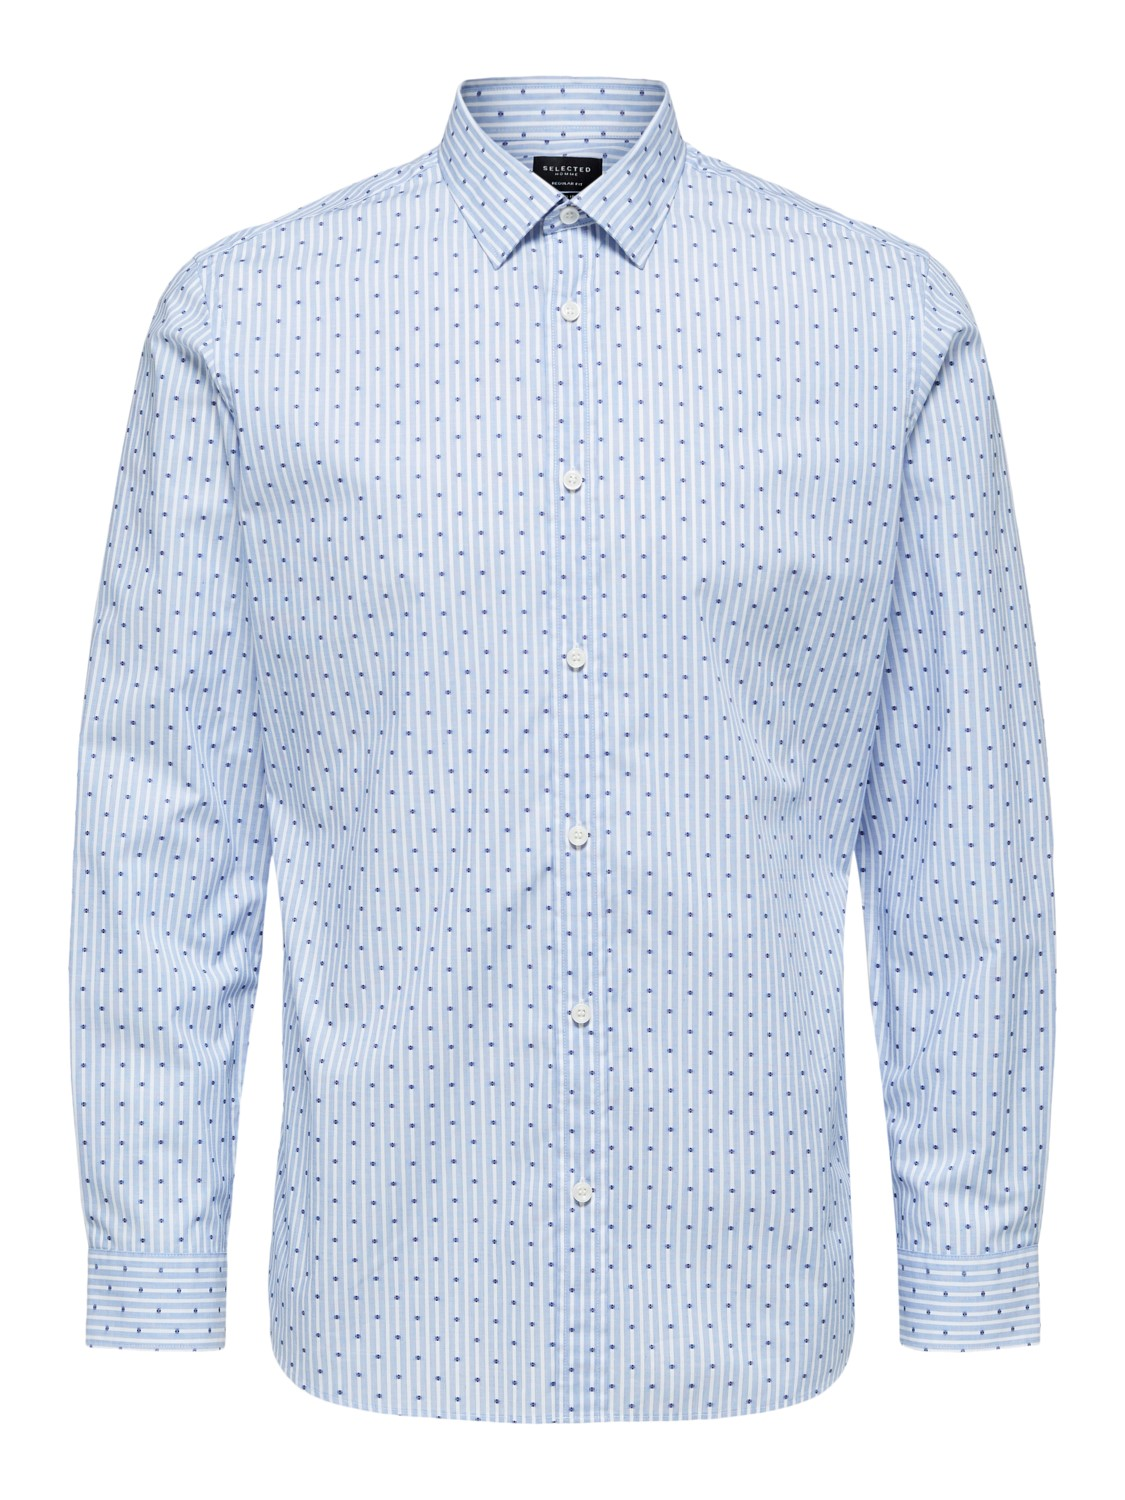 Selected Skjorte - Slhregpen-sixten light blue | Gate36 Hobro